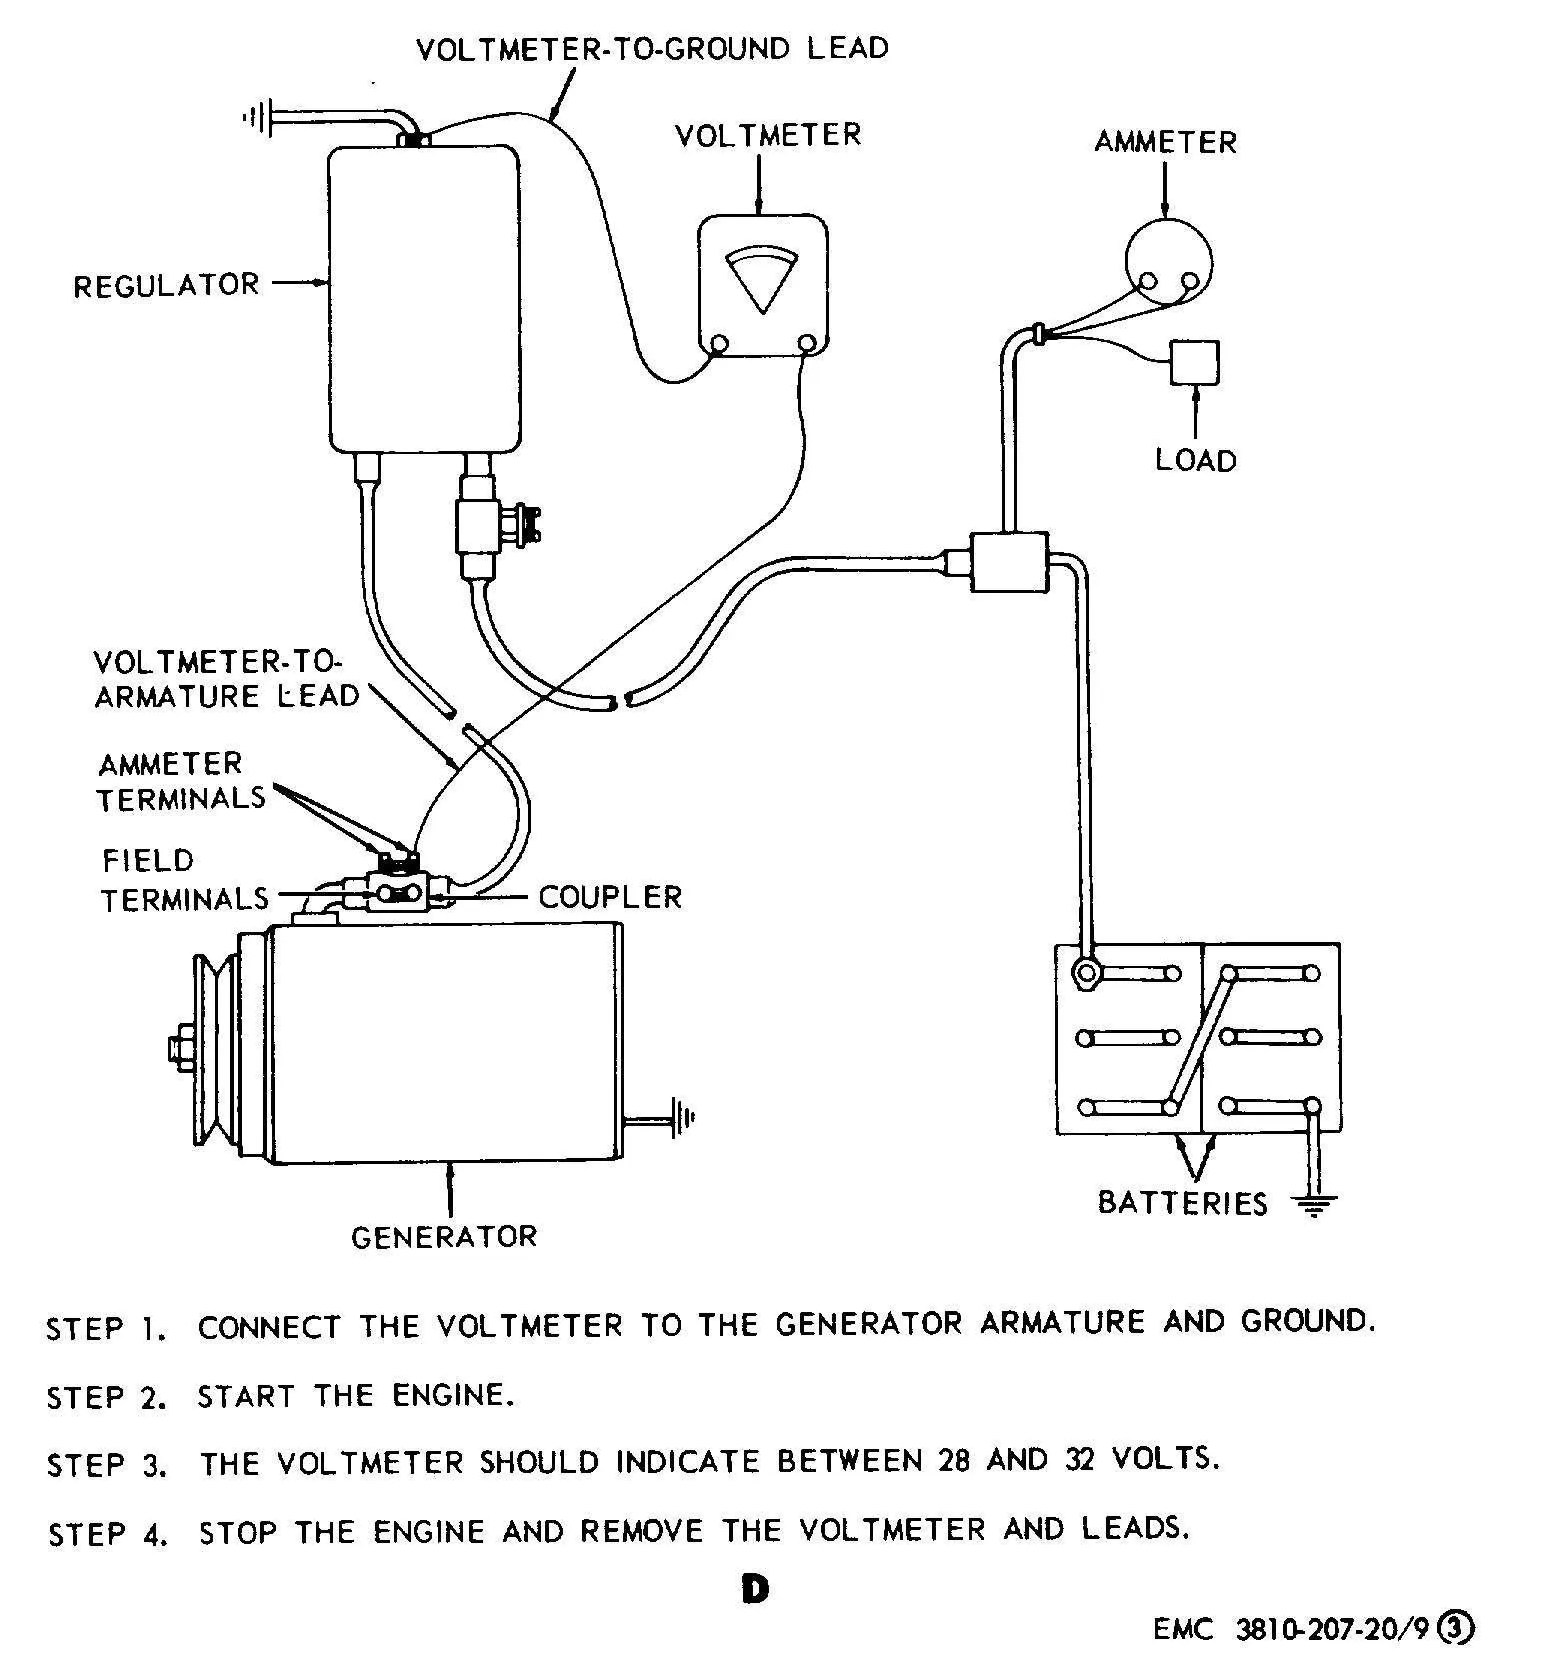 small resolution of stinger volt meter wiring diagram stinger best part of wiring diagramstinger voltmeter wiring diagram best part